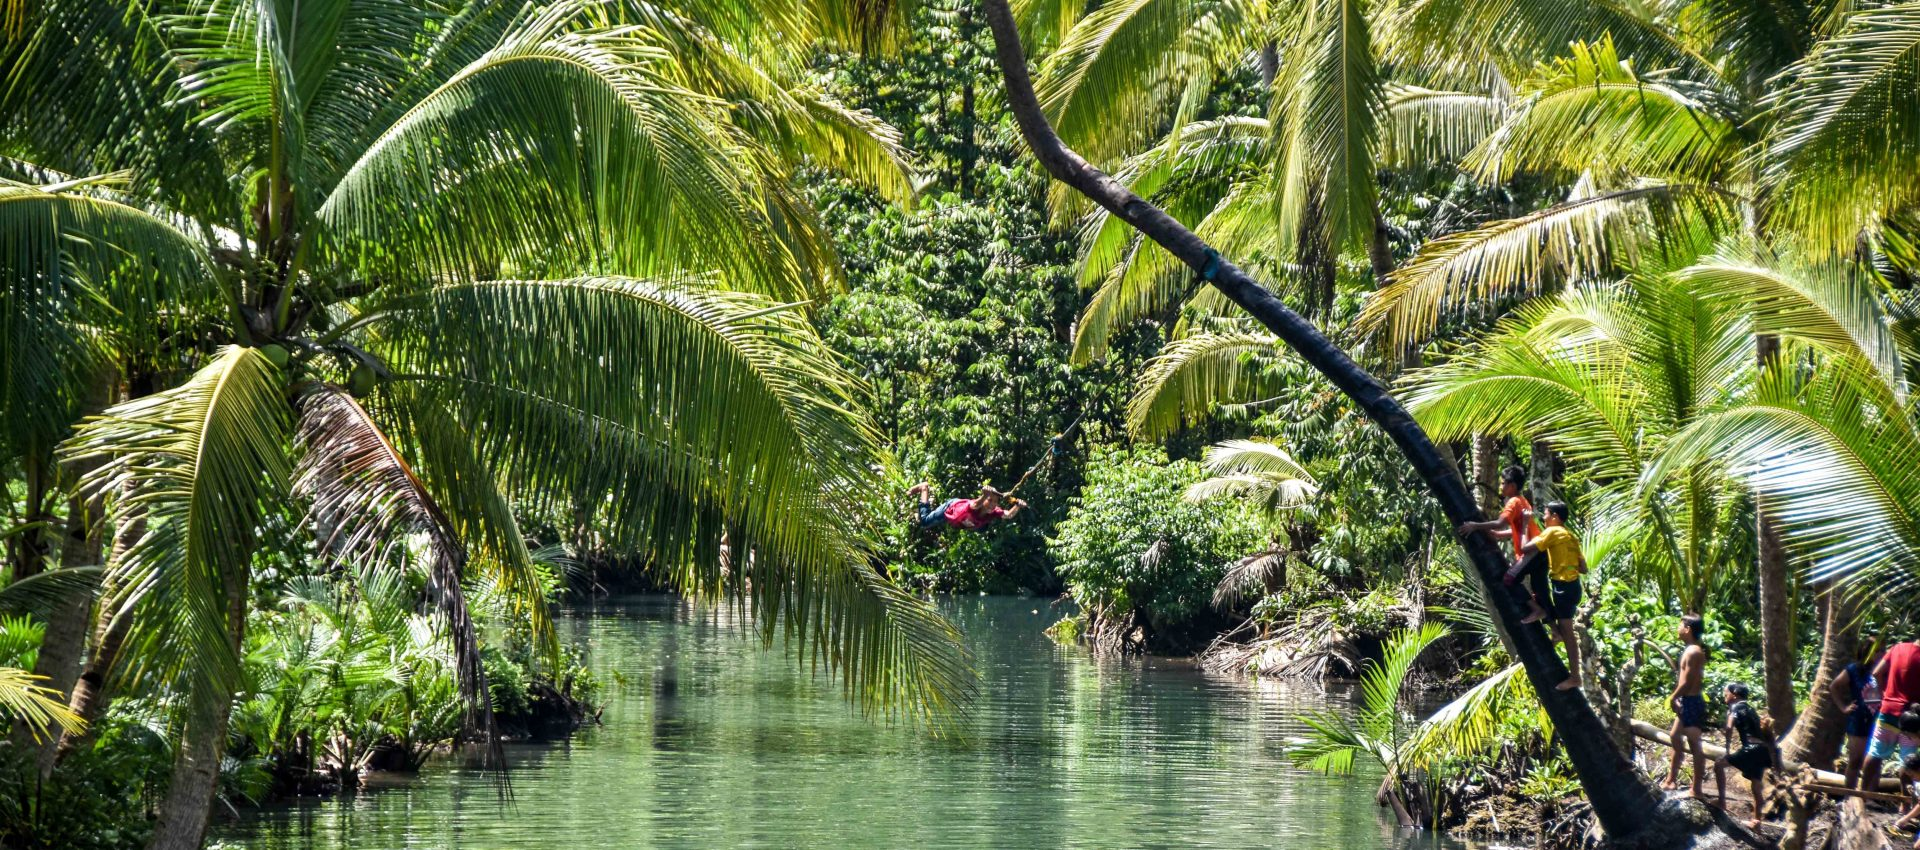 Swinging from a palm tree is extremely fun, the local kids will show you how.